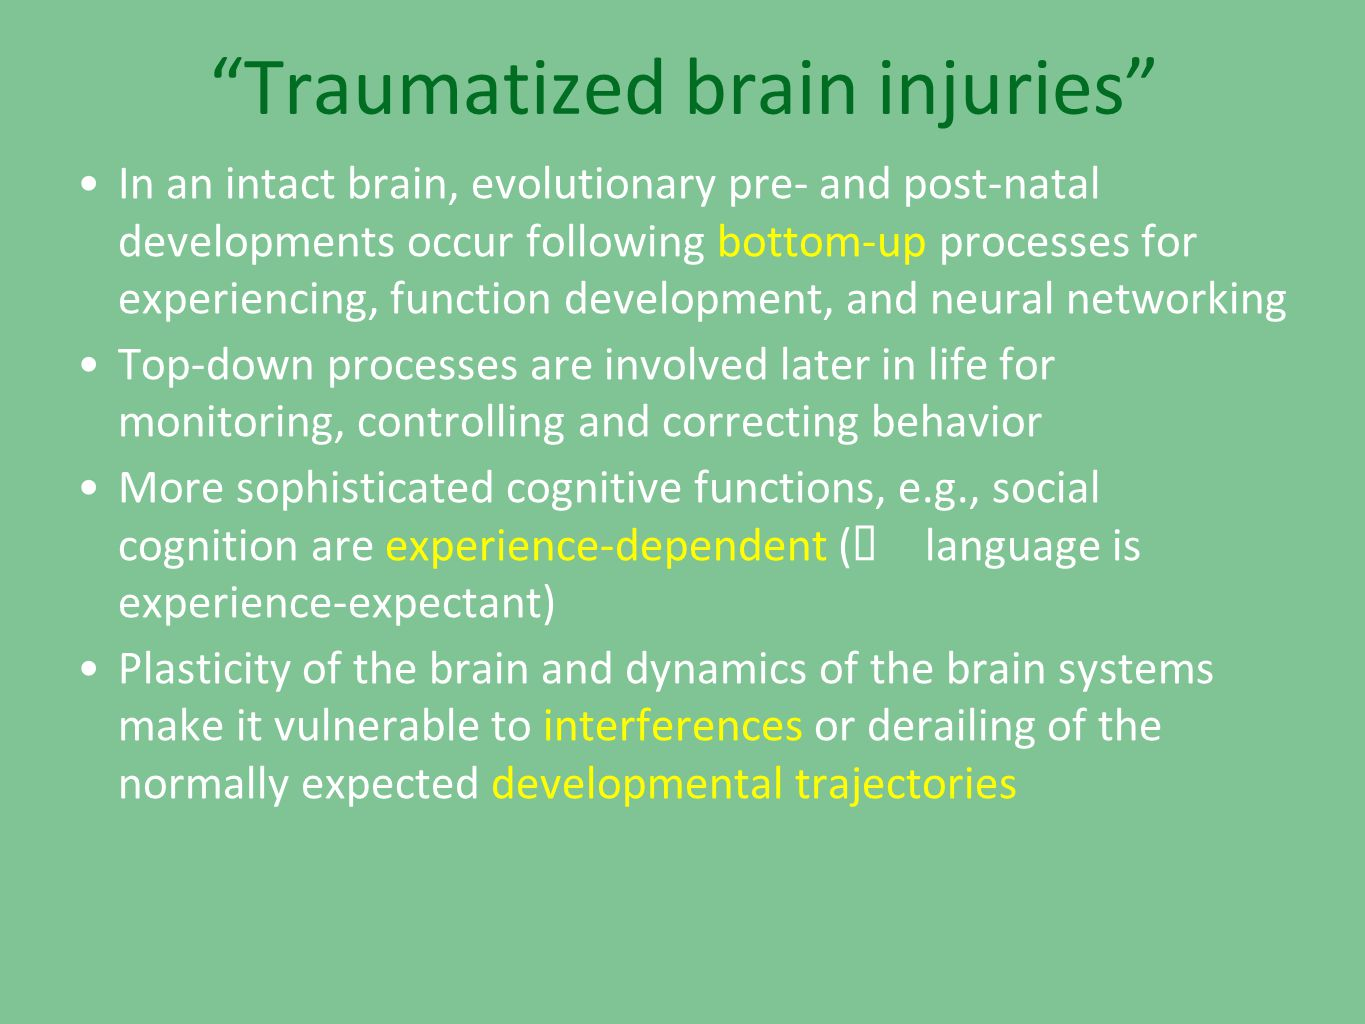 Traumatized brain injuries